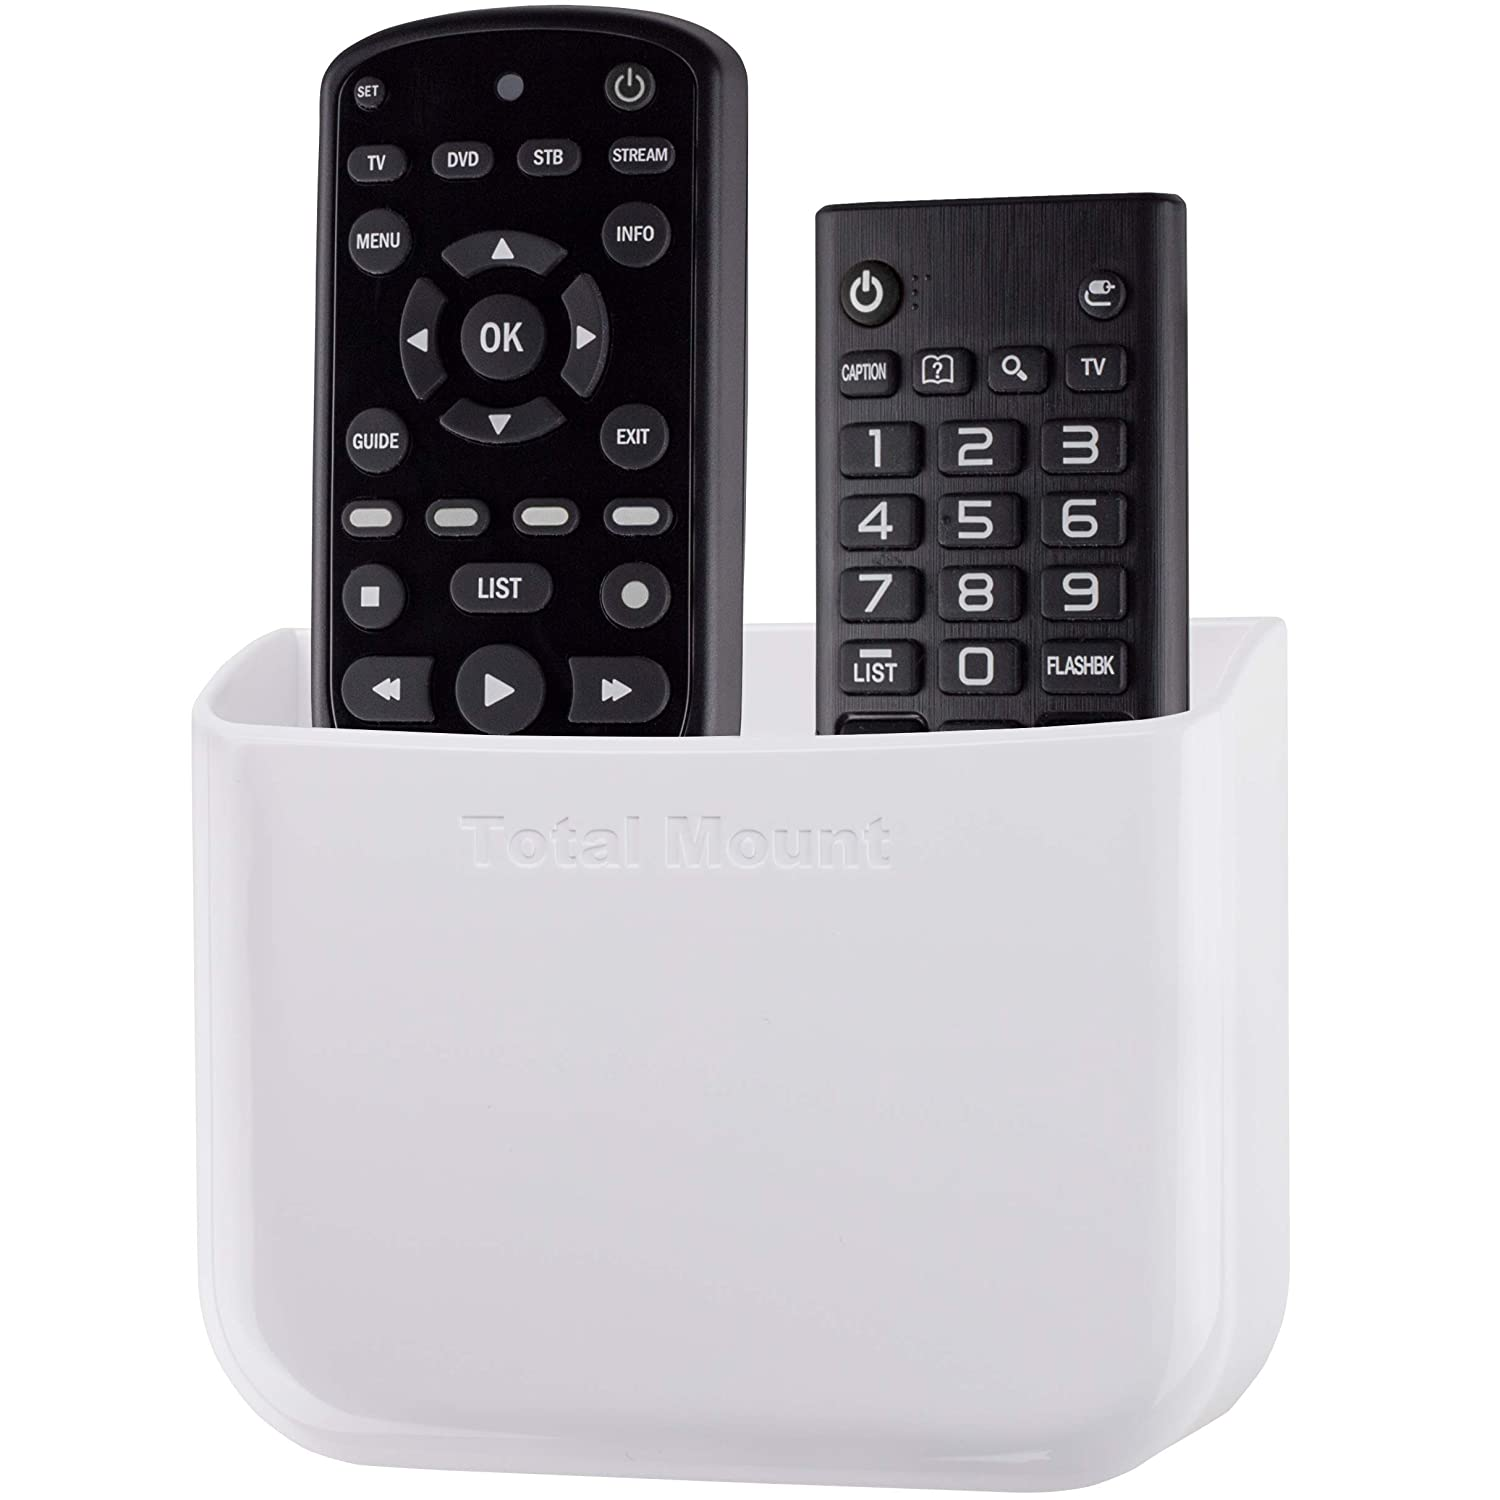 Eliminates Need to Drill Holes in Your Wall TotalMount Hole-Free Remote Holder for 2 or 3 Remotes - Black - Quantity 1